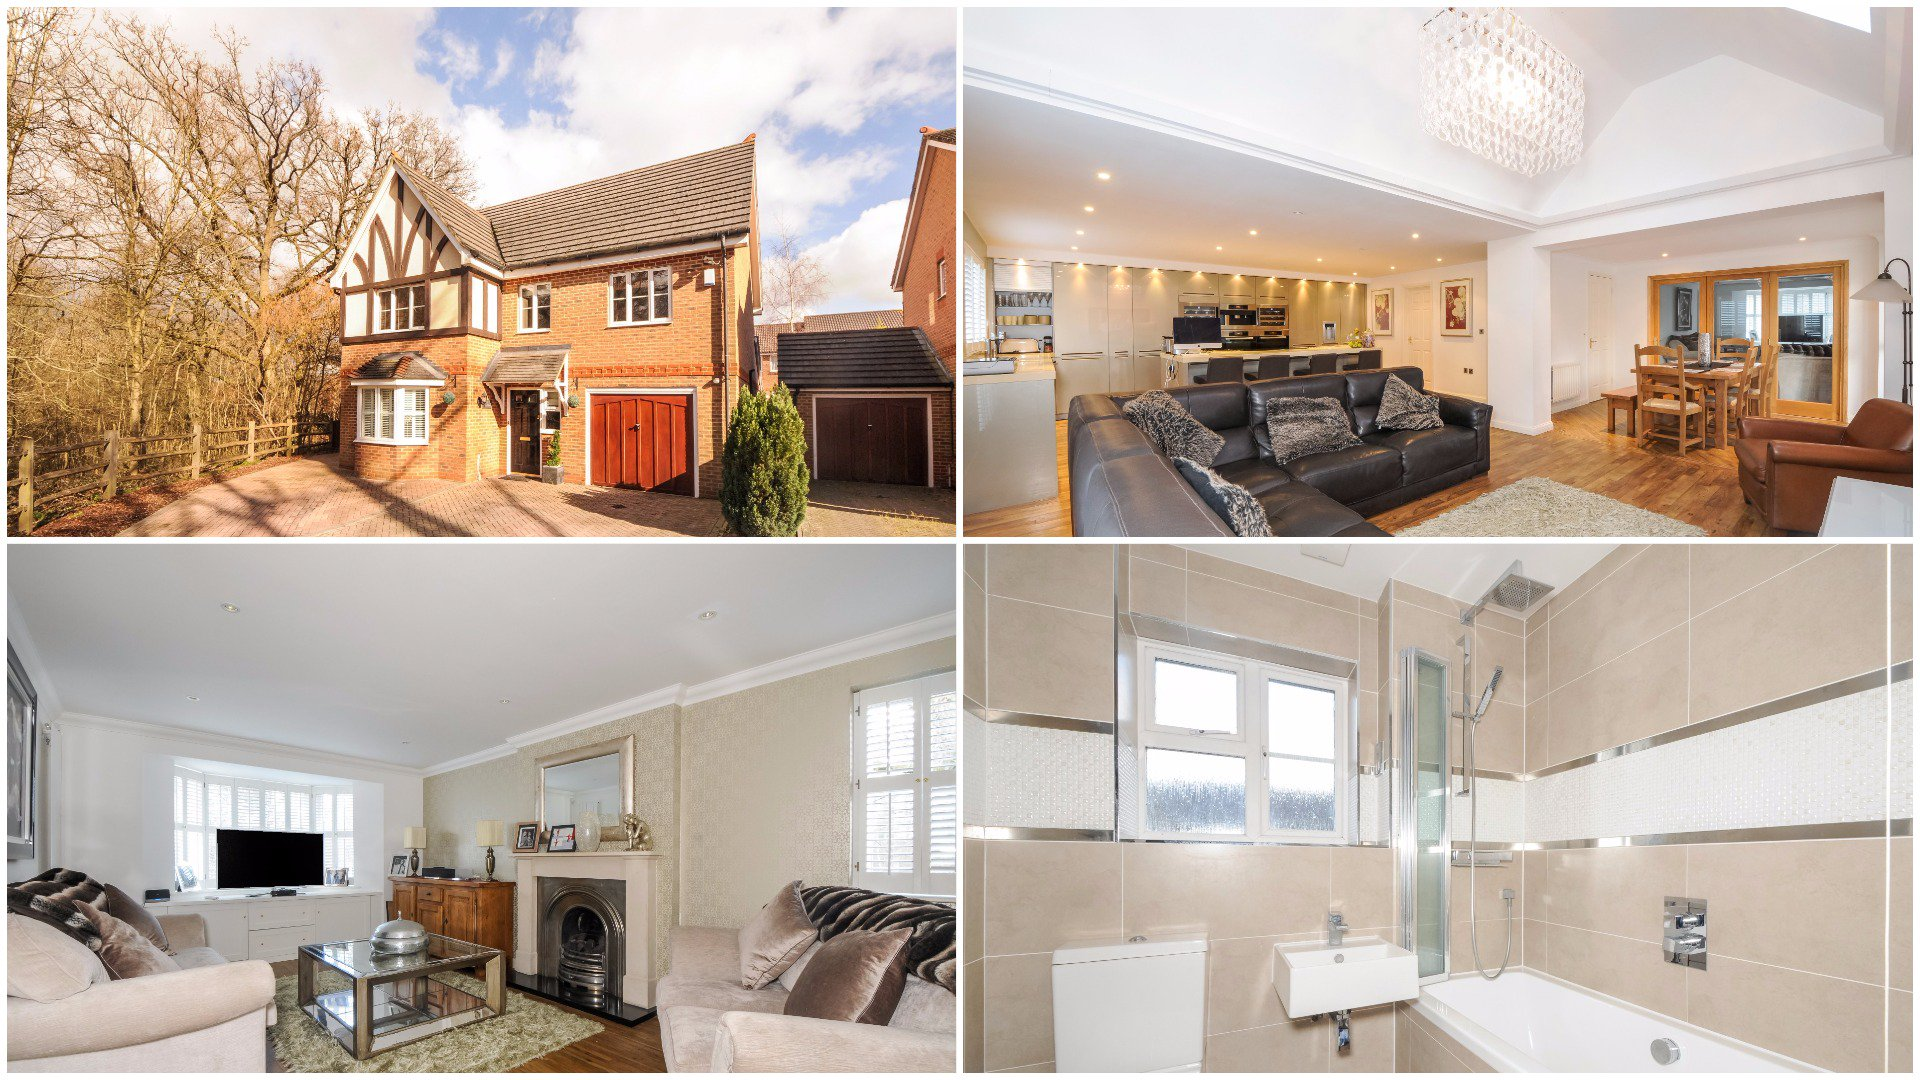 Sold to the first viewer! Stunning open plan accommodation #Chineham #Basingstoke #Winkworth #Propertyhants https://t.co/LqSg70HMhm